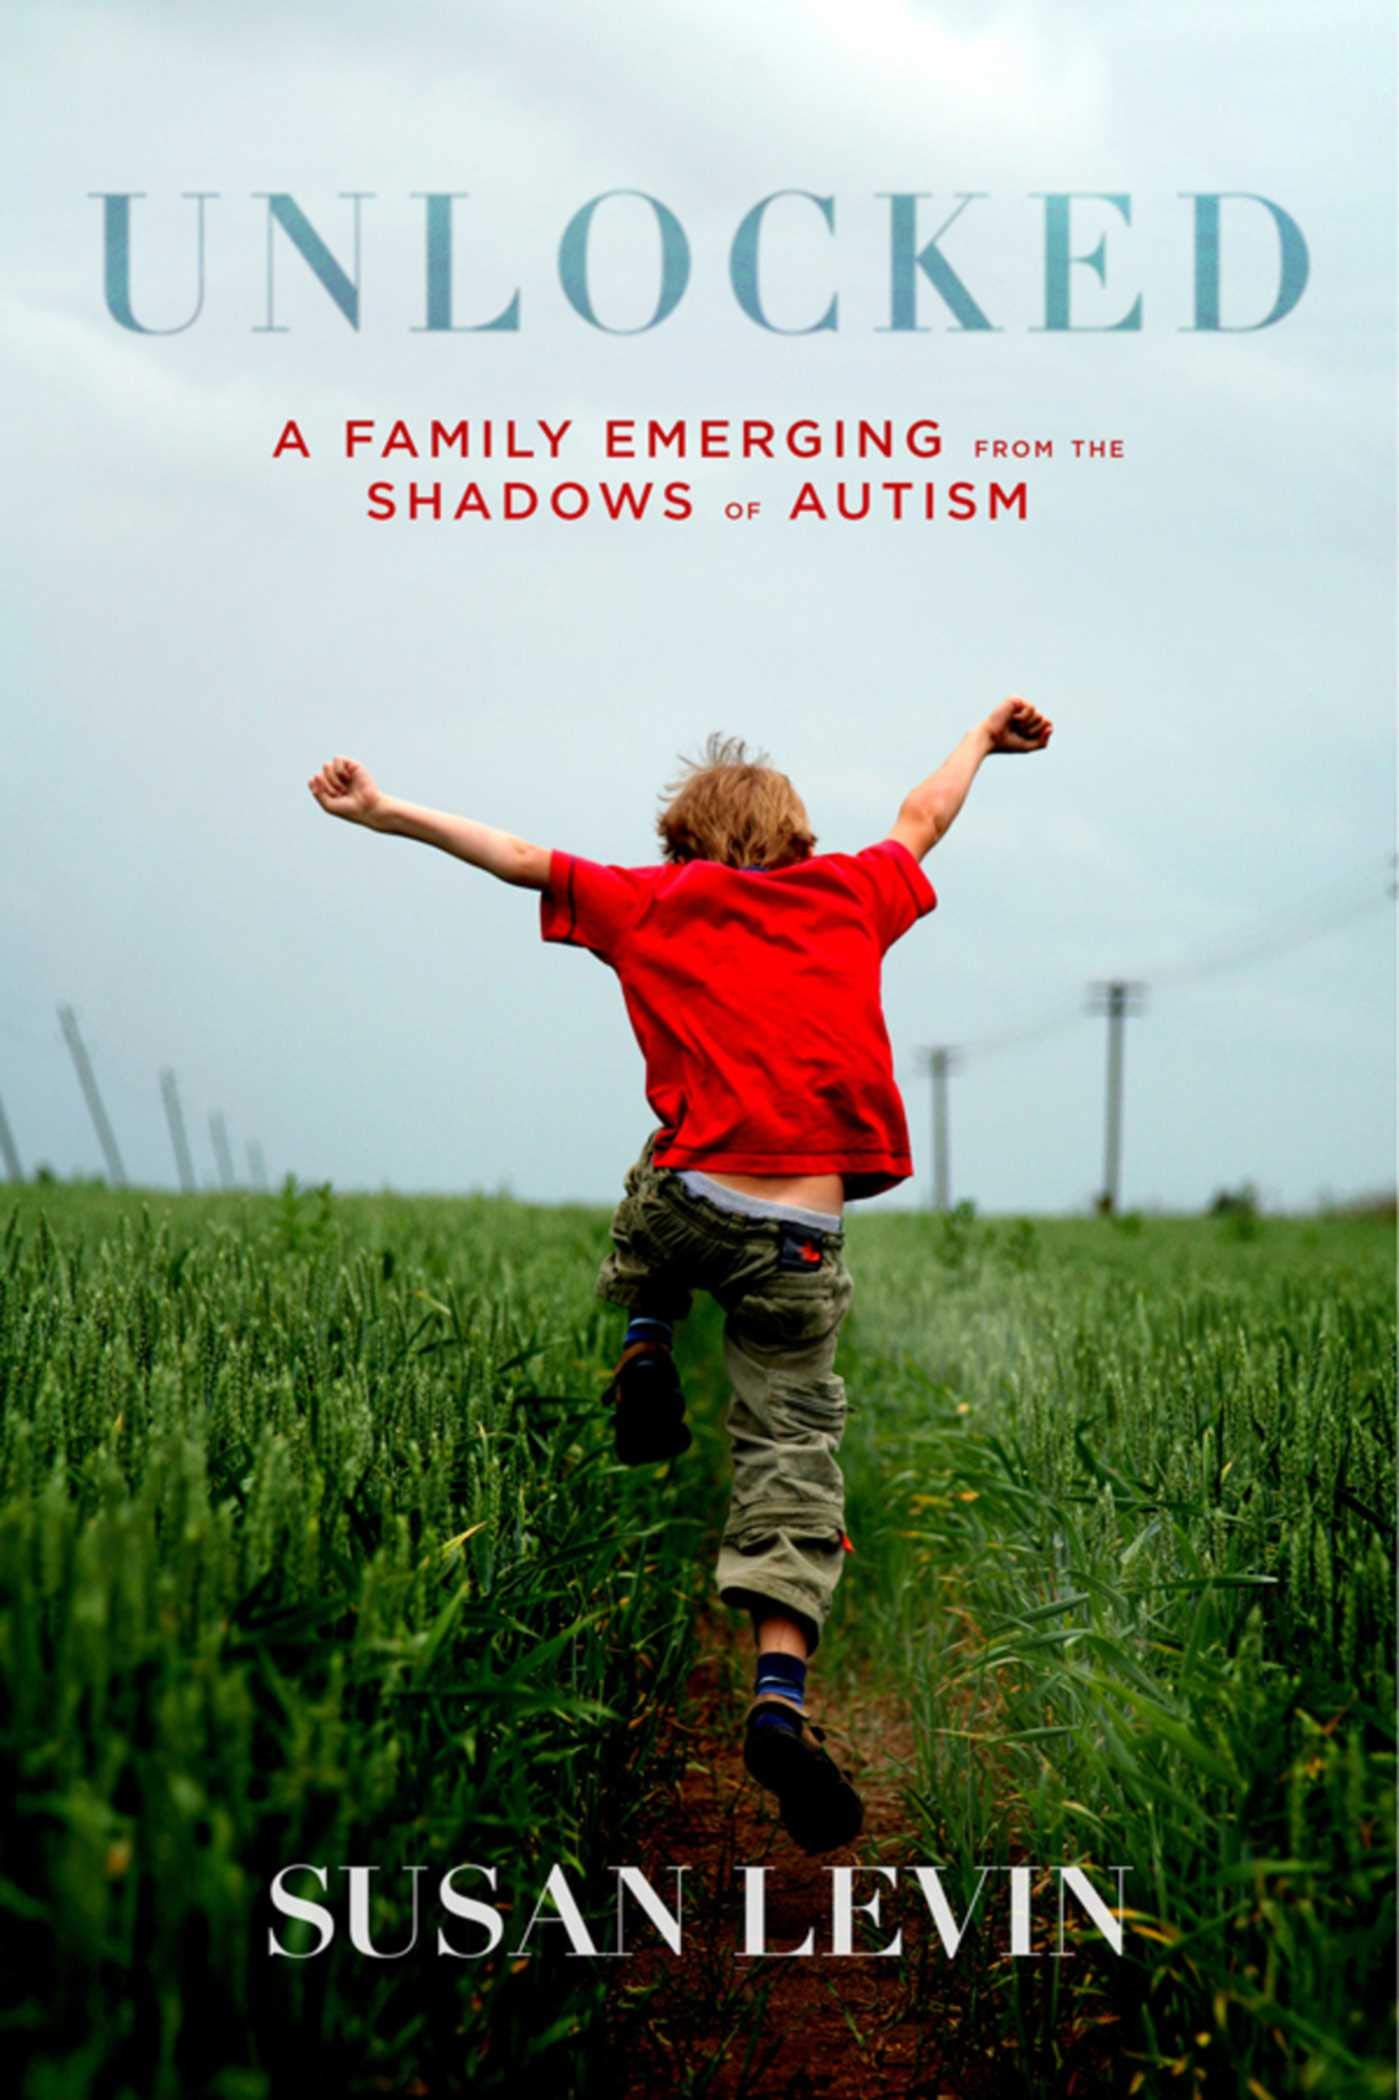 Unlocked: A Family Emerging from the Shadows of Autism: Susan Levin:  9781632207197: Amazon.com: Books